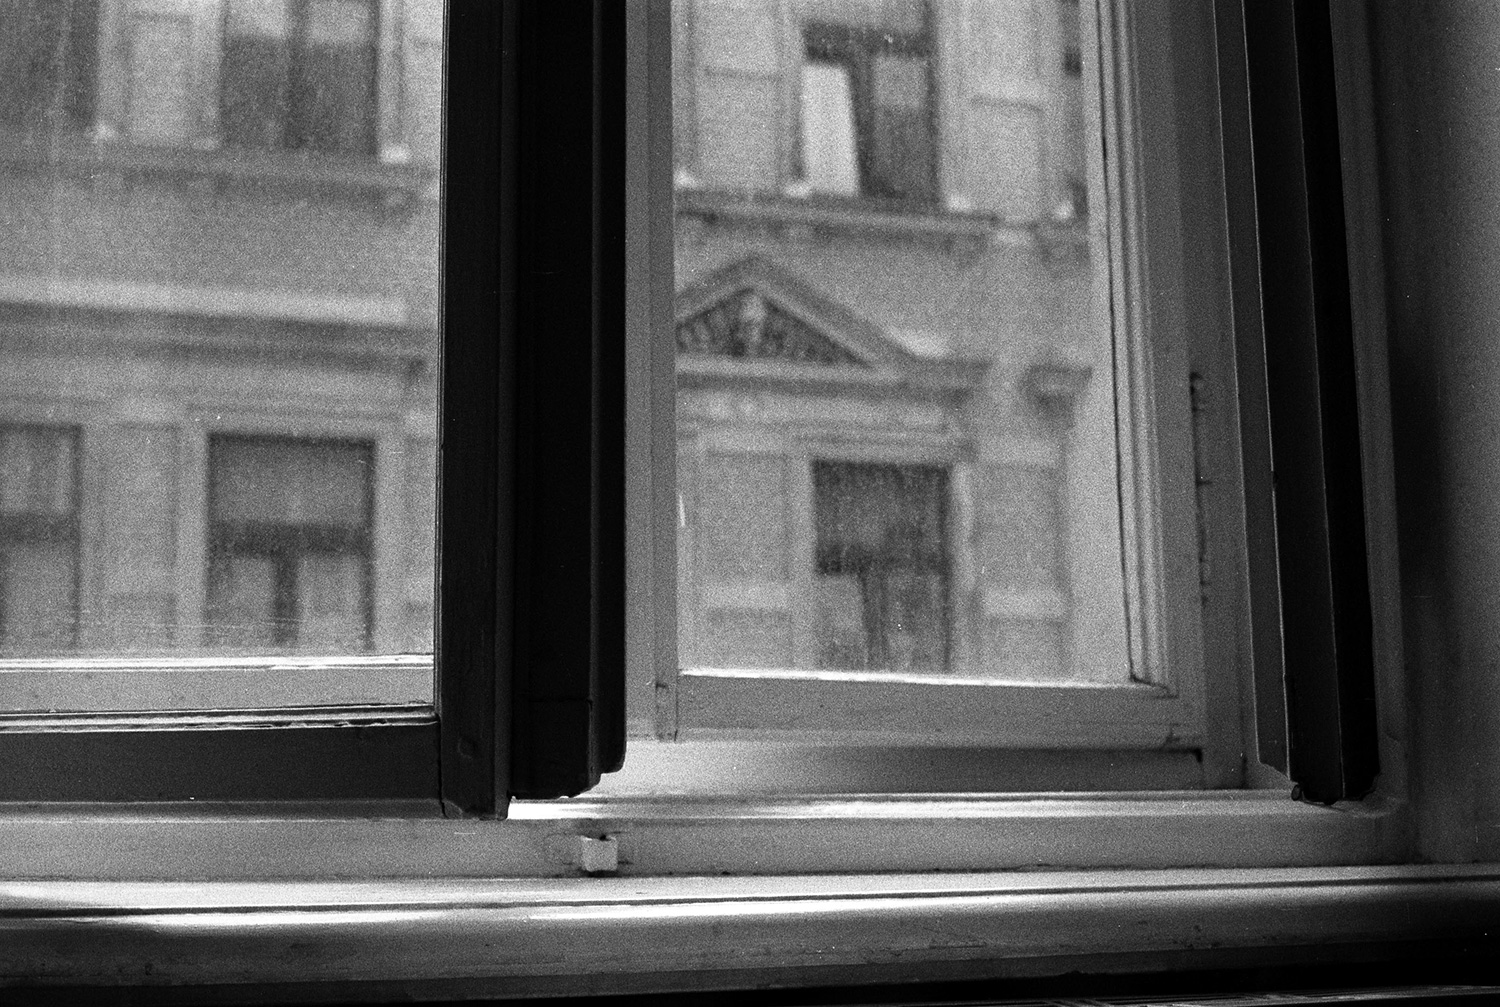 A scan of a photograph on black and white film of a slightly open window.